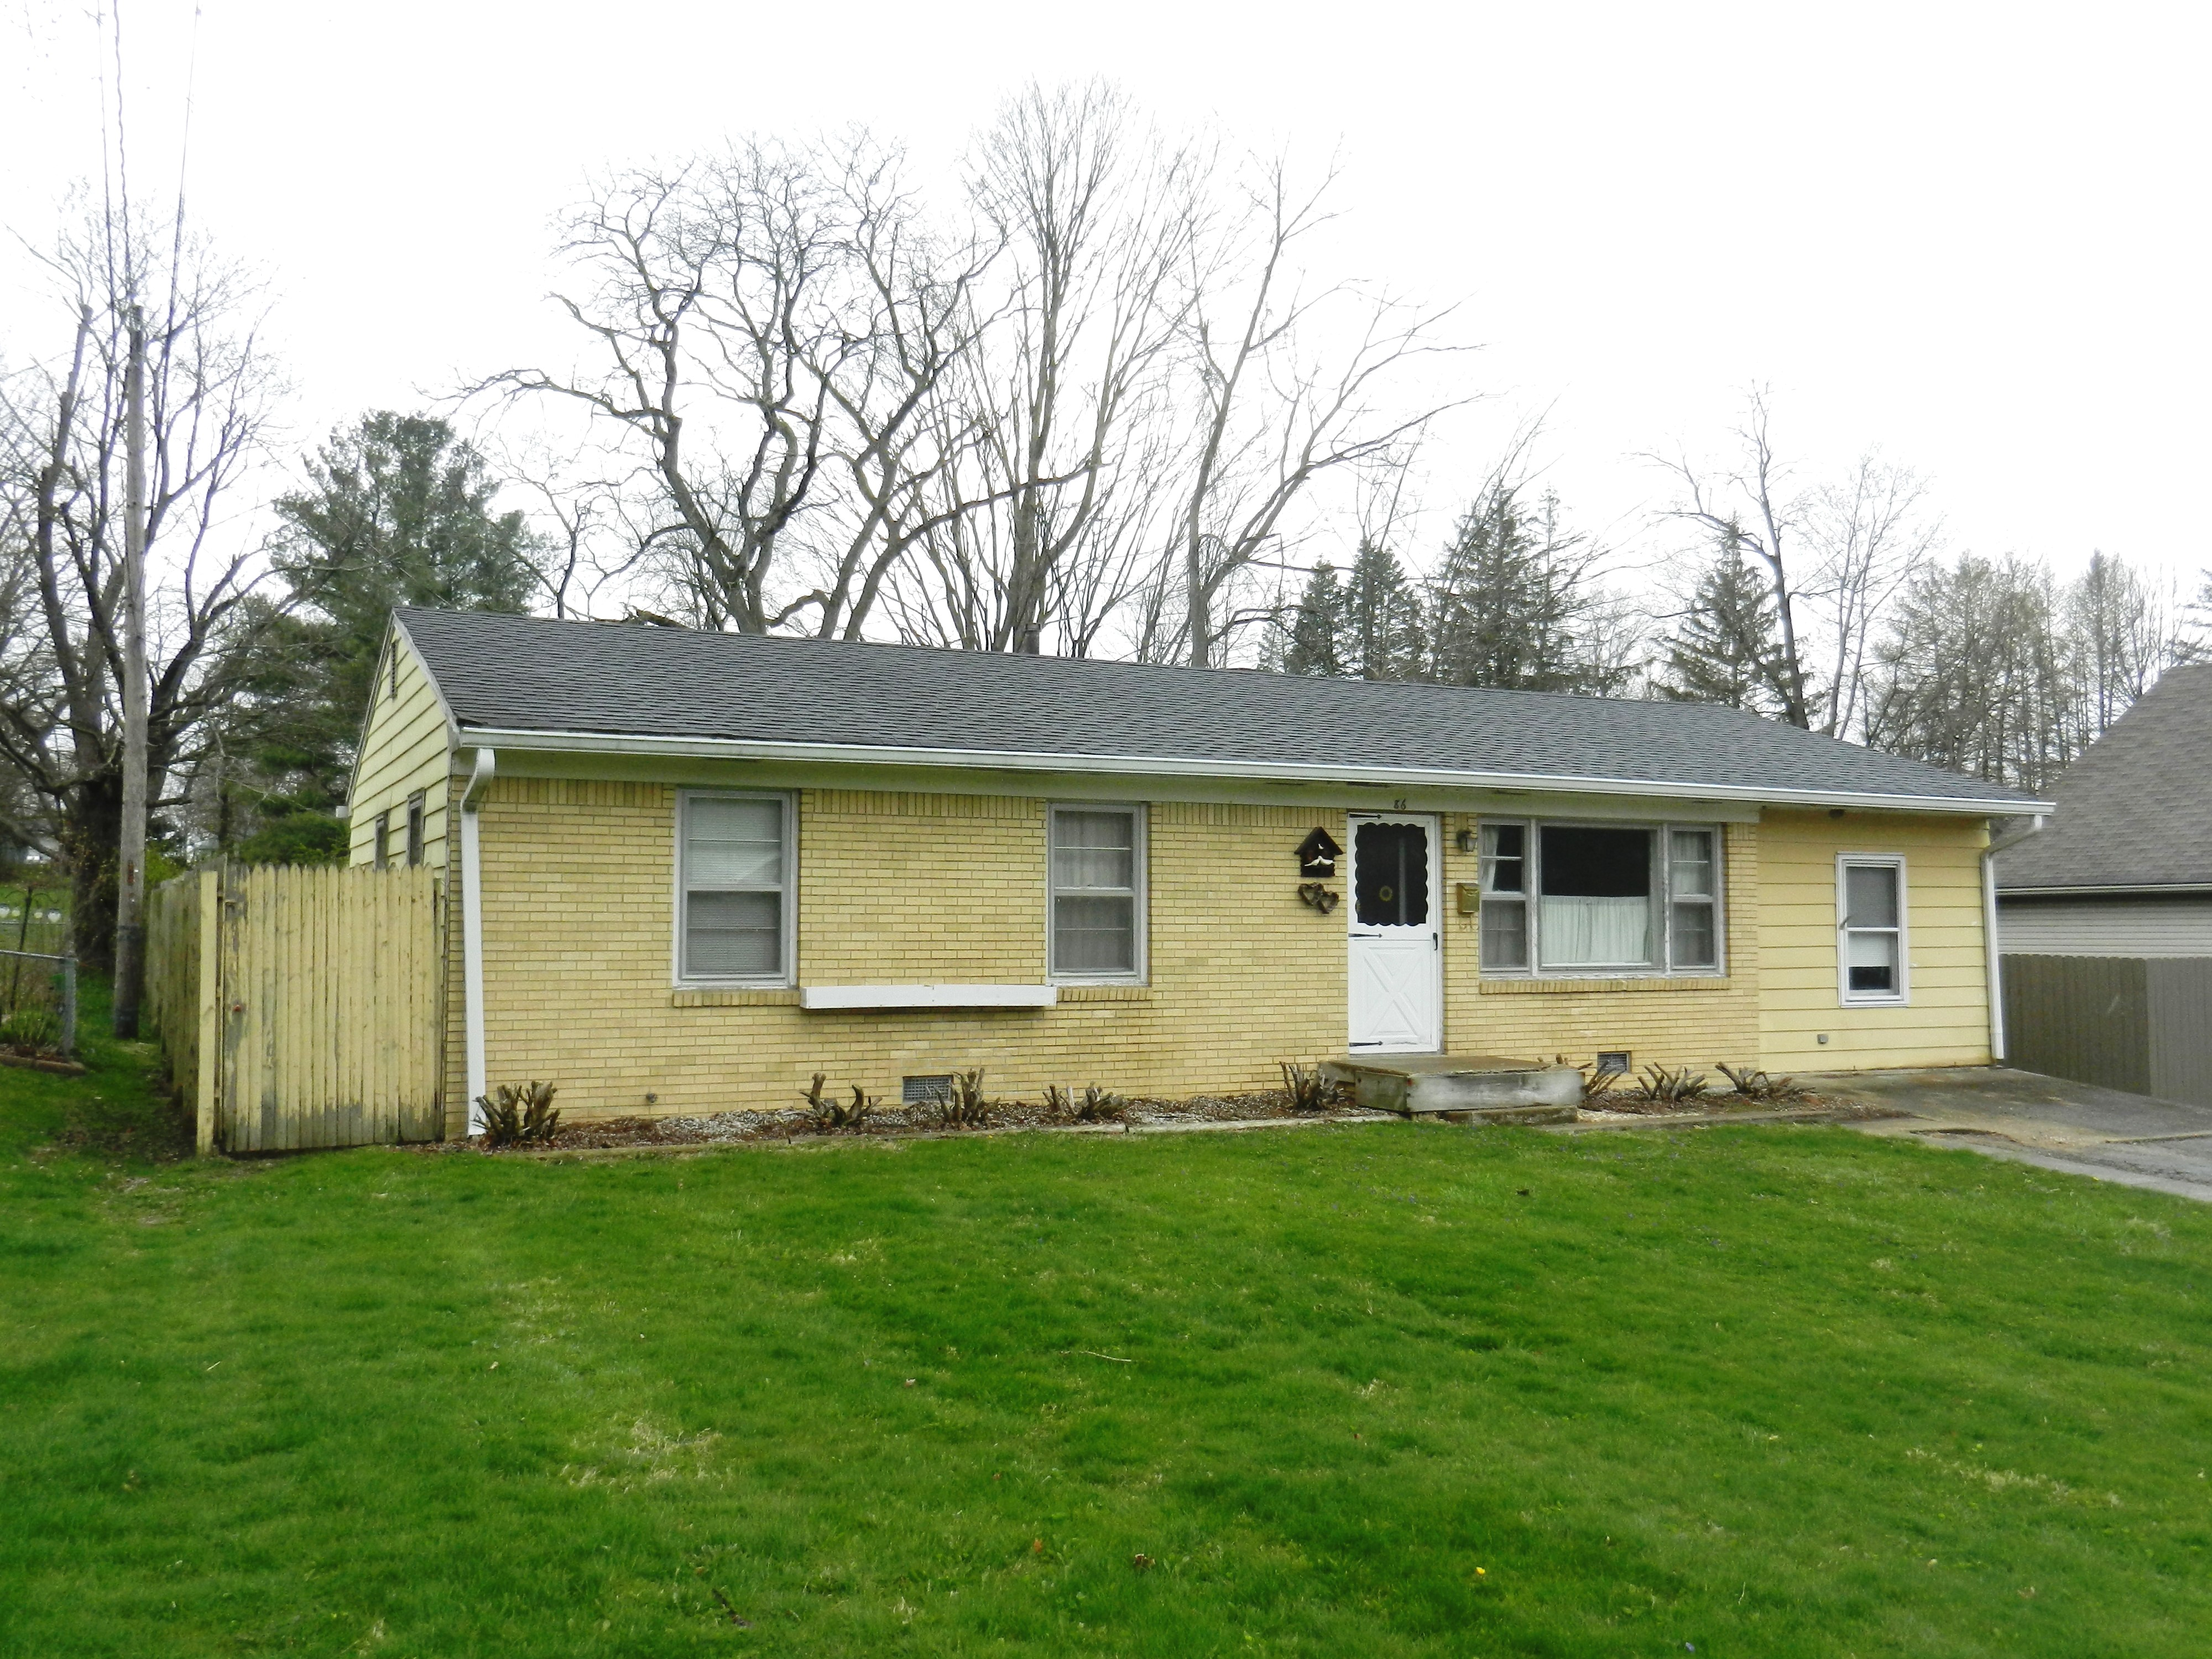 3 BEDROOM, 2 FULL BATH HOME – GREAT INVESTMENT PROPERTY!